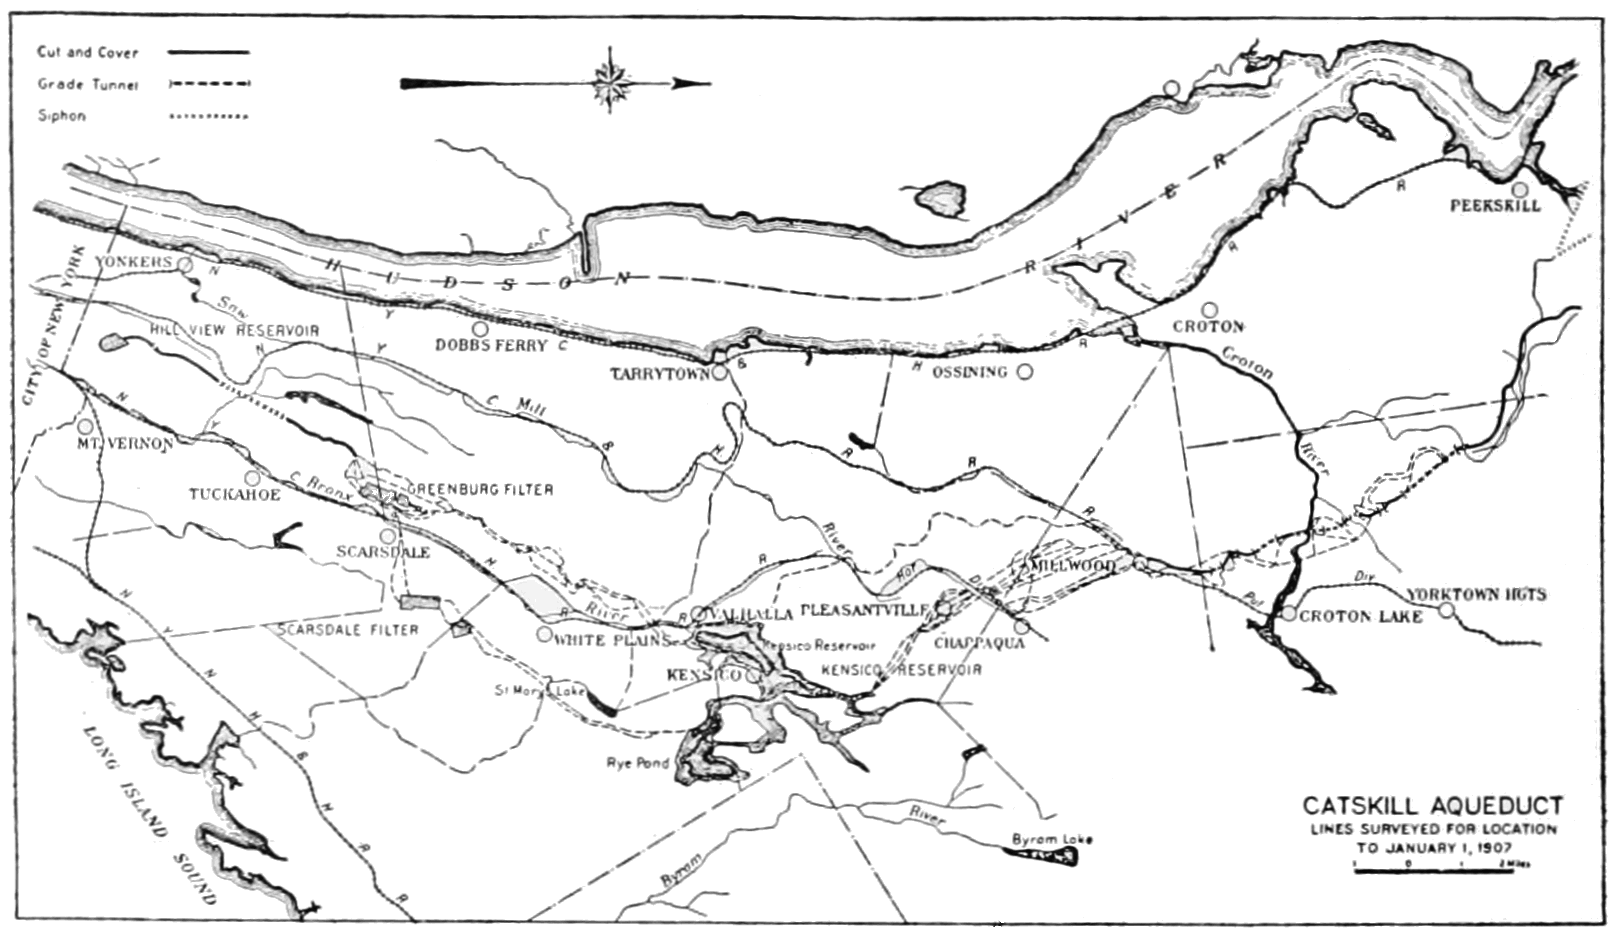 PSM V79 D104 Map of the southern aquaduct of the catskill water supply.png